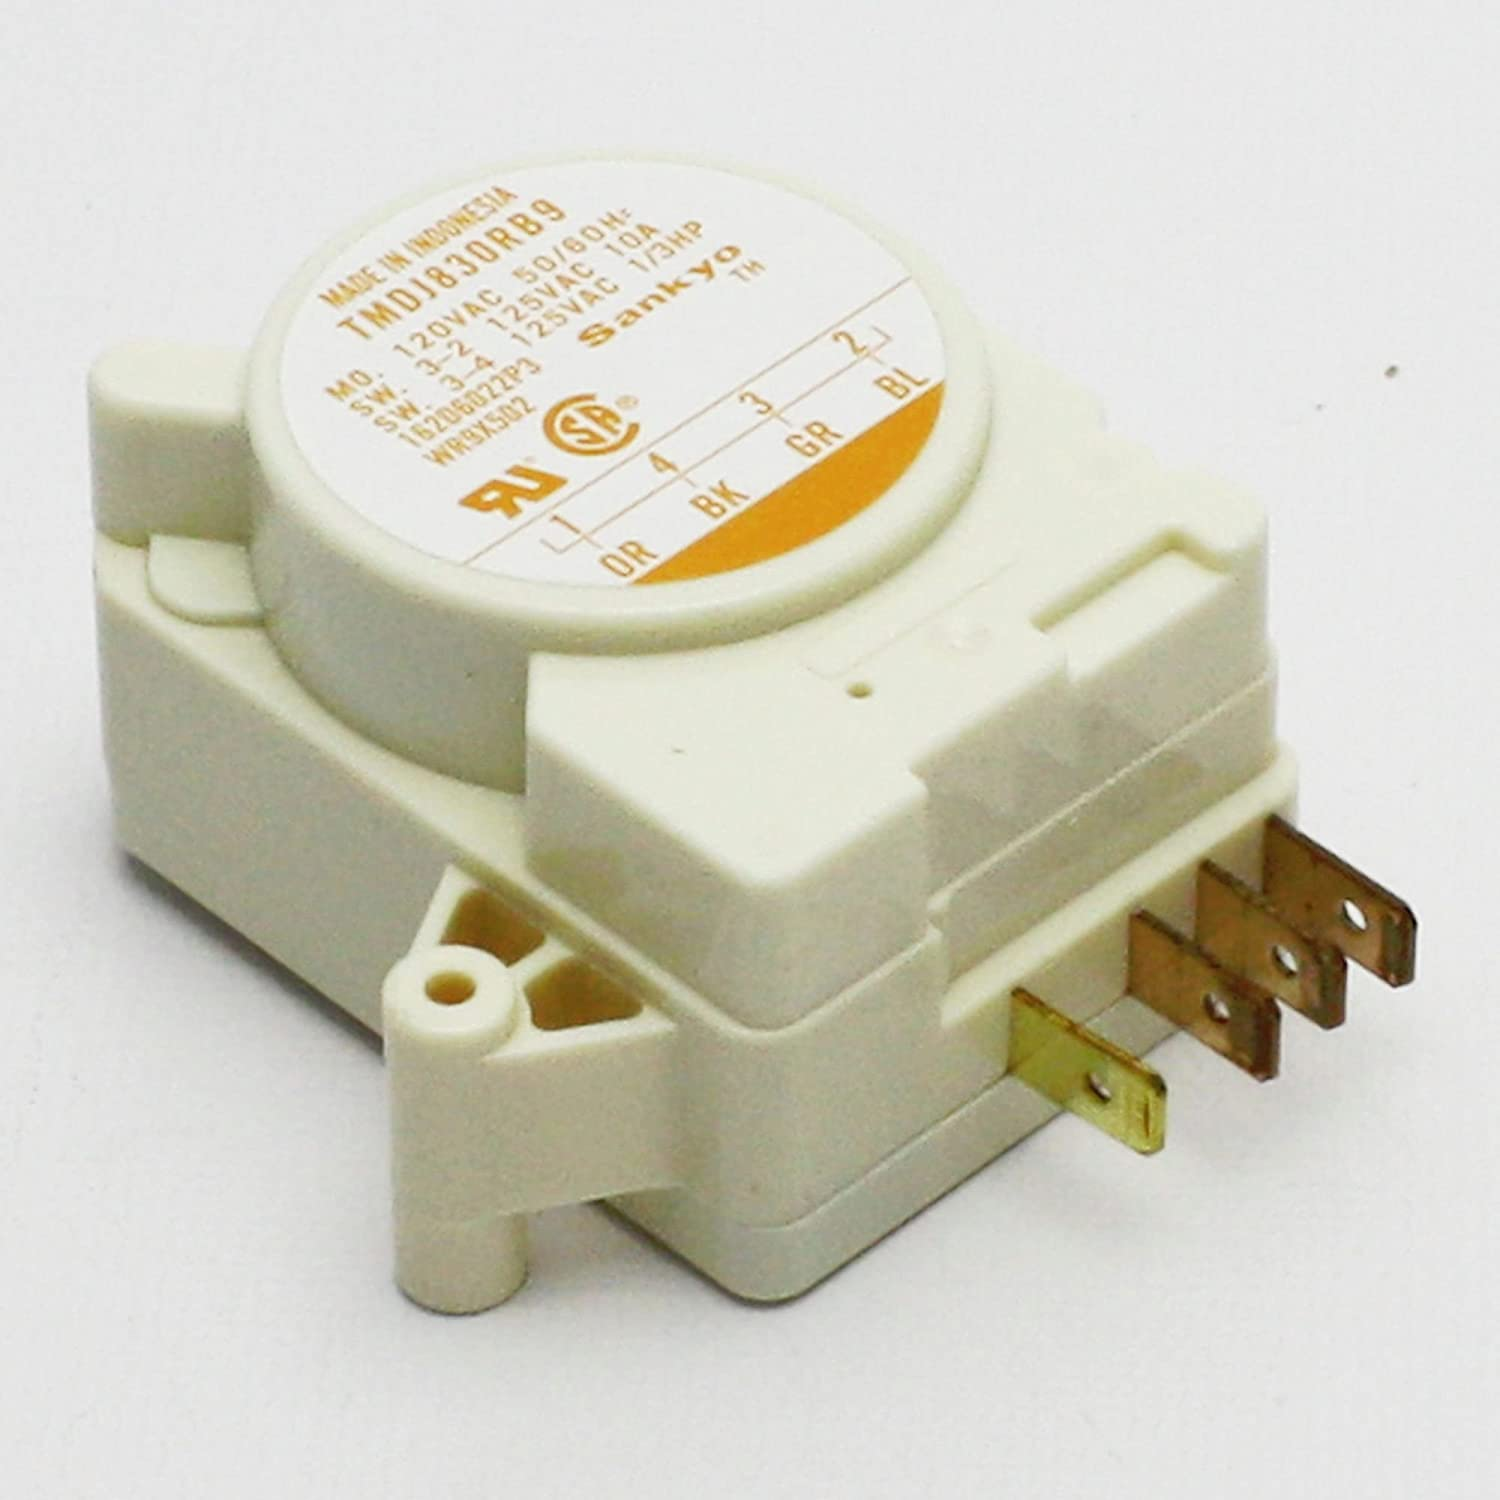 ERWR9X502 Defrost Timer Replaces WR9X502 For GE Kenmore SEARS Refrigerators